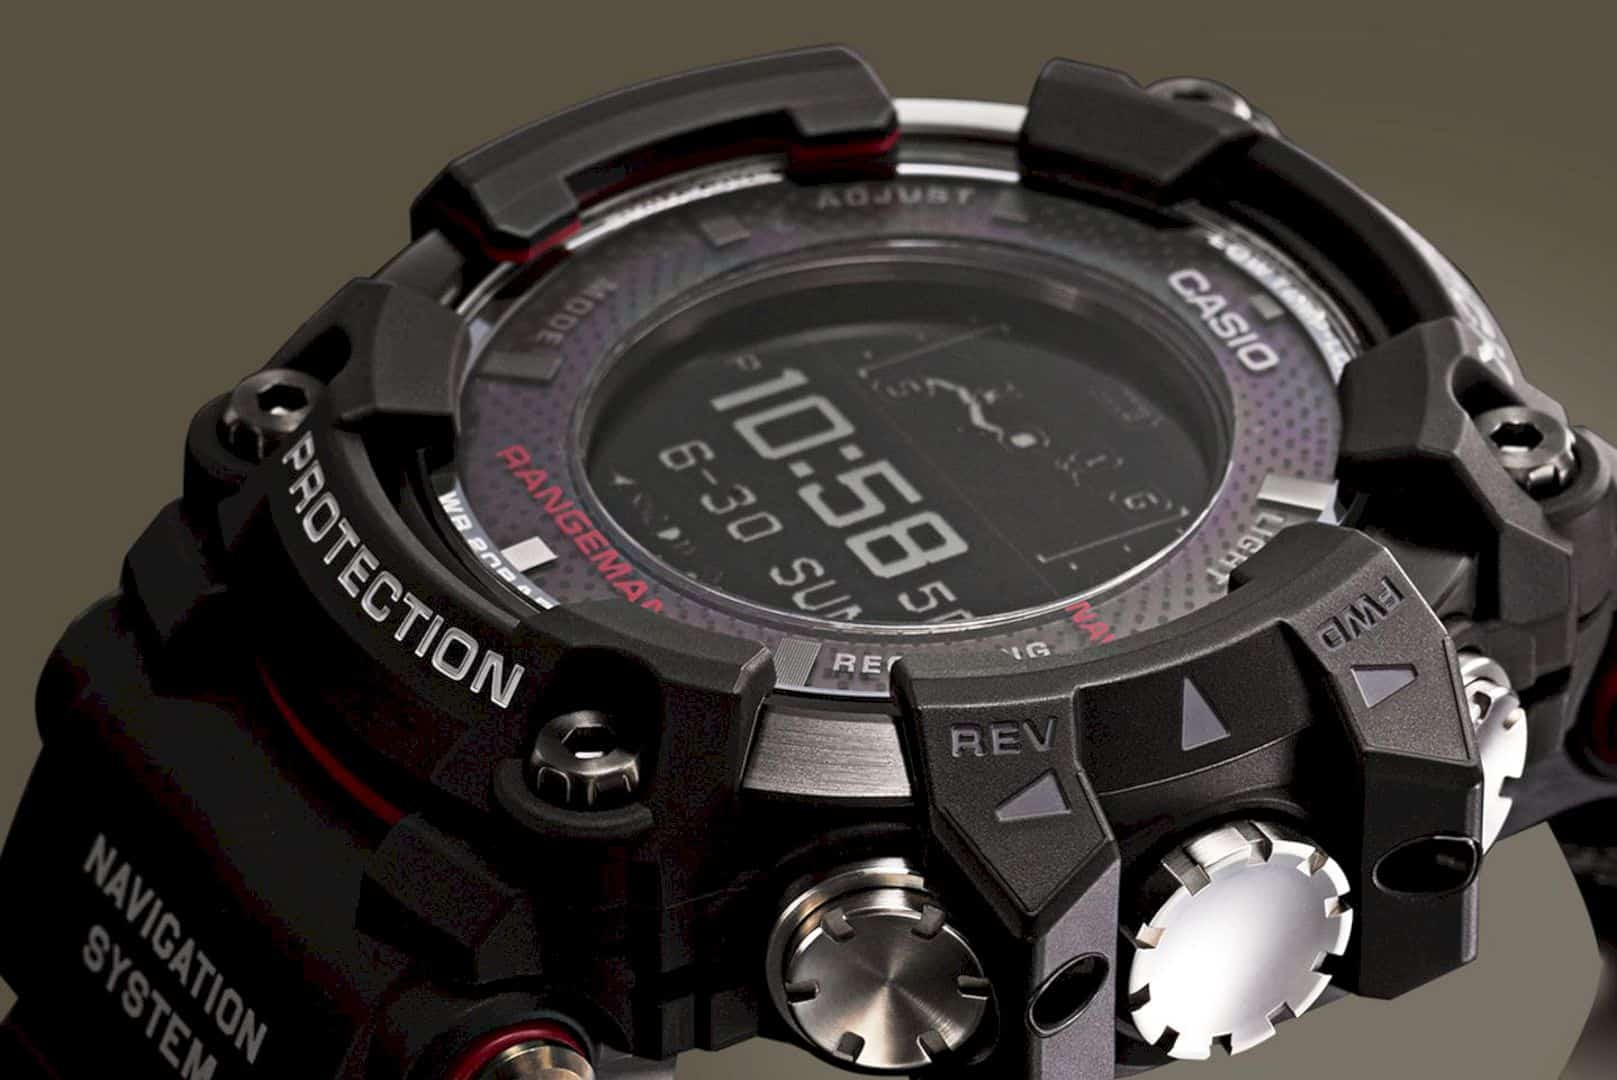 GPR-B1000: A Watch with Ultimate Toughness for Survival